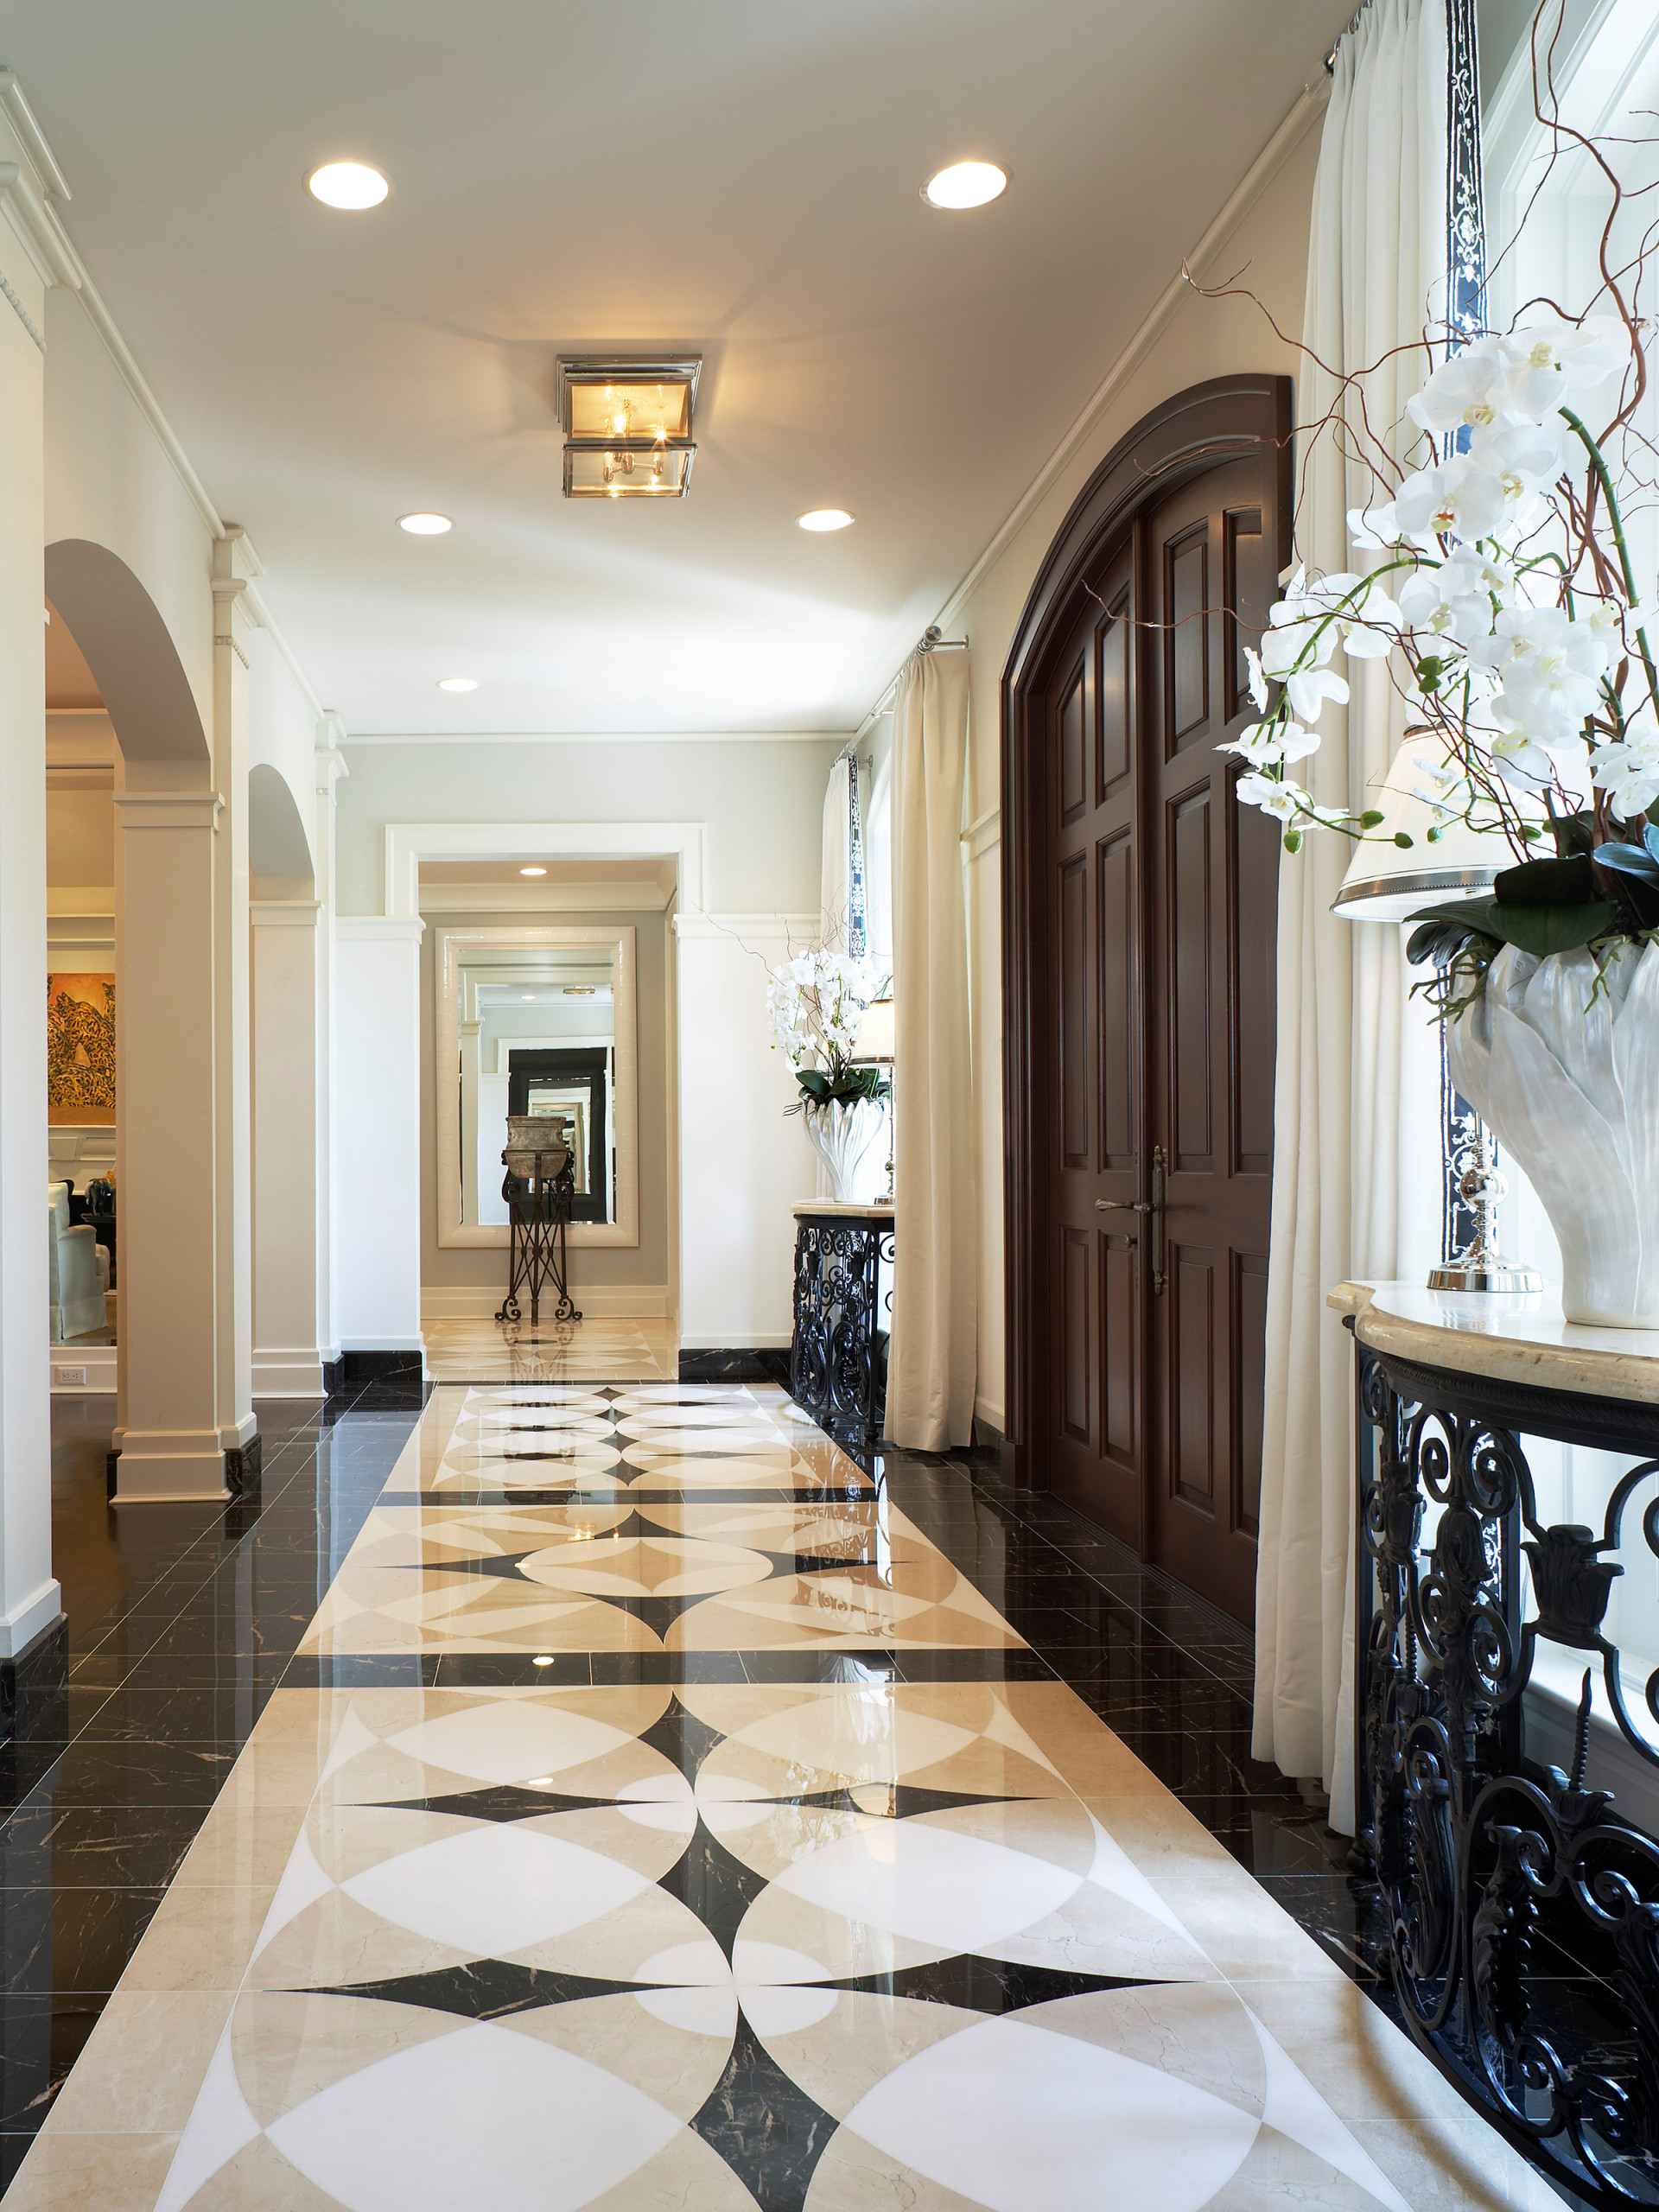 75 Beautiful Traditional Marble Floor Entryway Pictures Ideas December 2020 Houzz